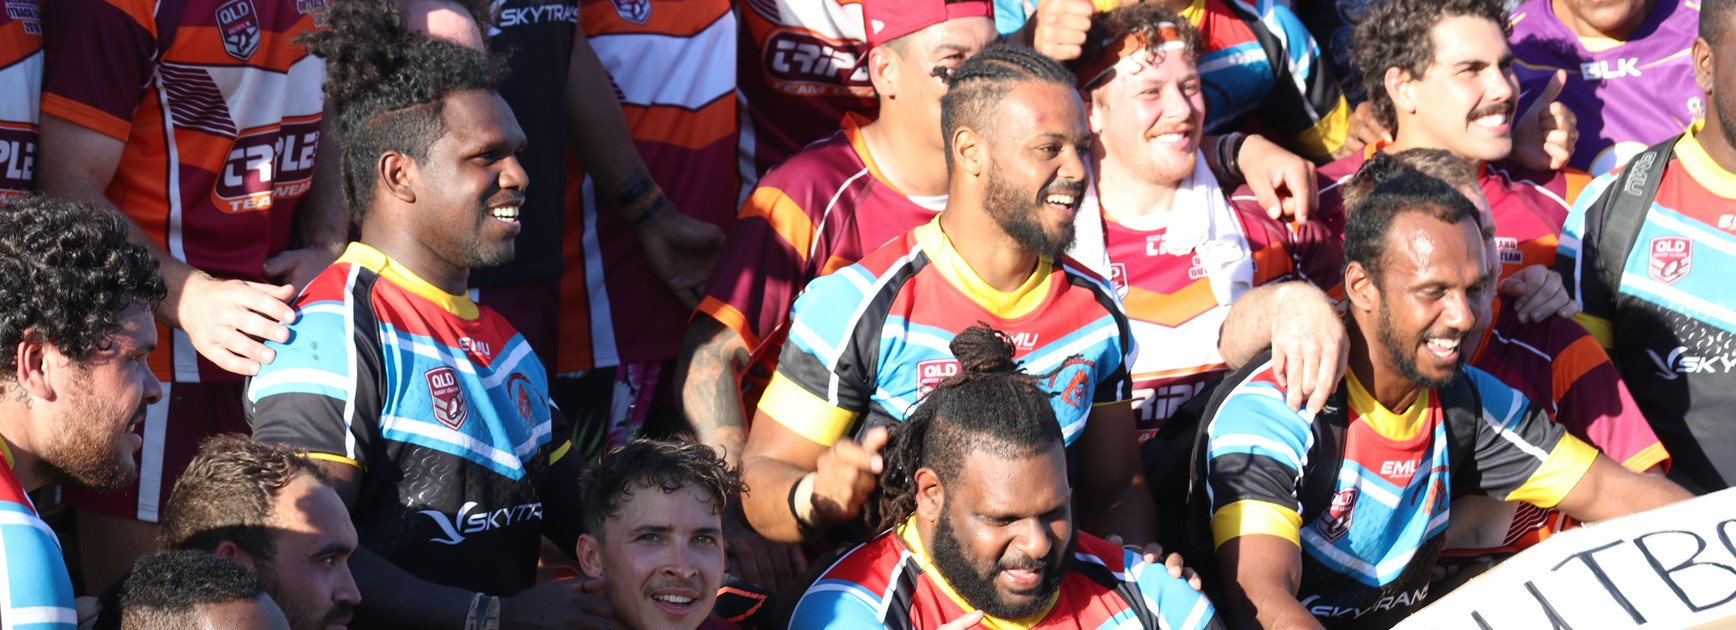 Queensland Outback outlast North Queensland United